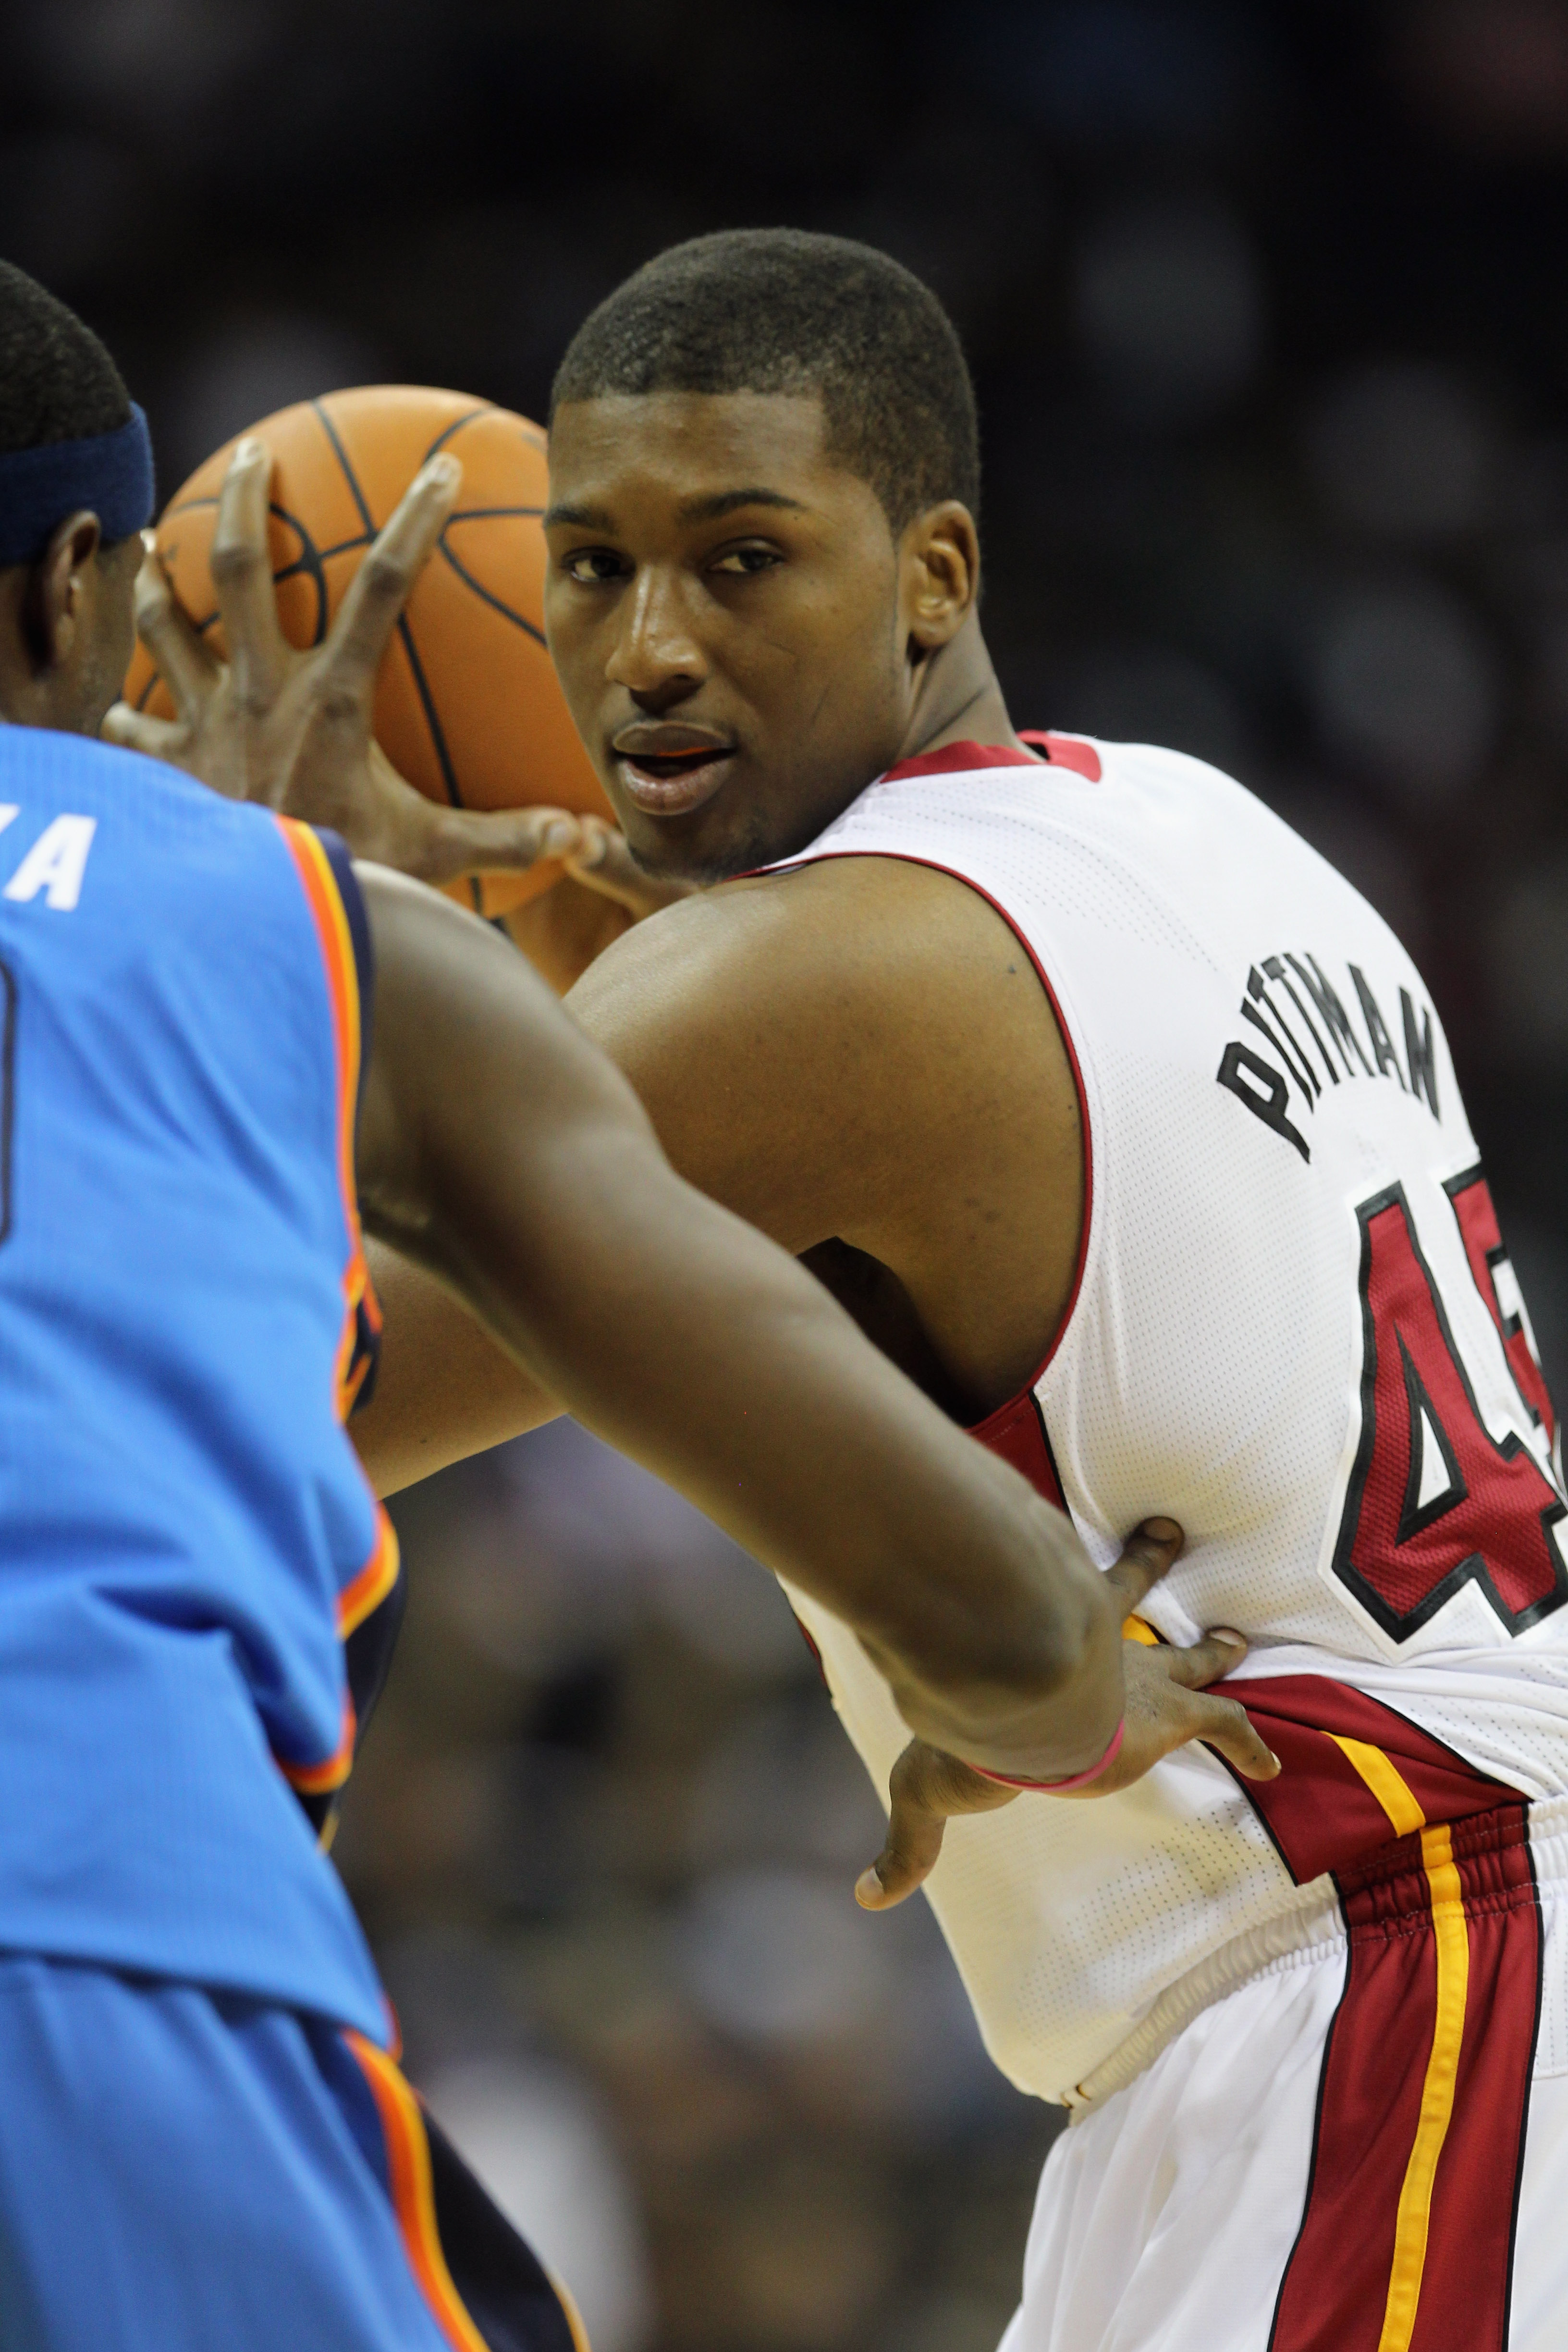 KANSAS CITY, MO - OCTOBER 08:  Dexter Pittman #45 of the Miami Heat in action during the game against the Oklahoma City Thunder on October 8, 2010 at the Sprint Center in Kansas City, Missouri.  (Photo by Jamie Squire/Getty Images)